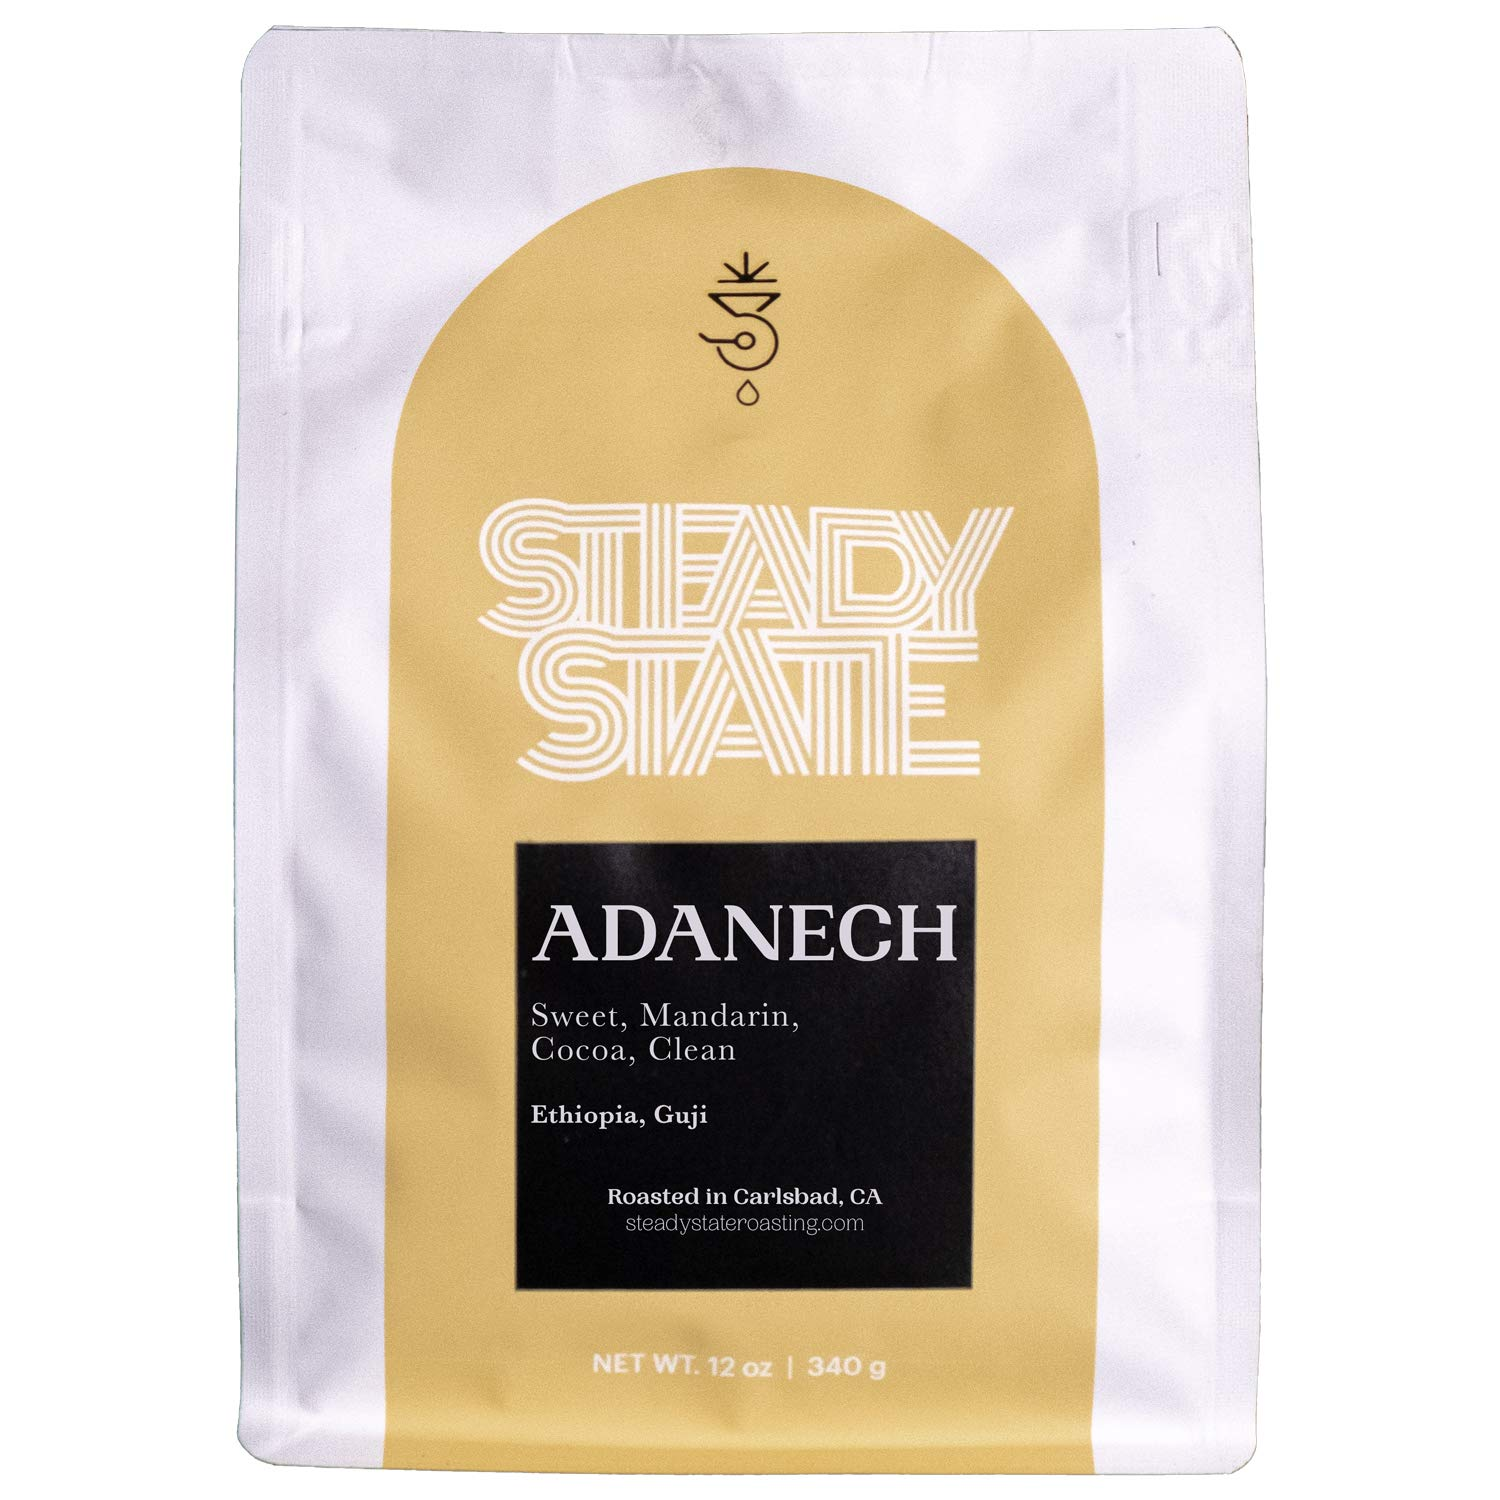 Whole Bean Coffee, Light Roasted Ethiopian Coffee, Adanech 12oz Coffee Bag,Natural, Blueberry, Sweet Mandarin, Guji Coffee Beans by Steady State Roasting